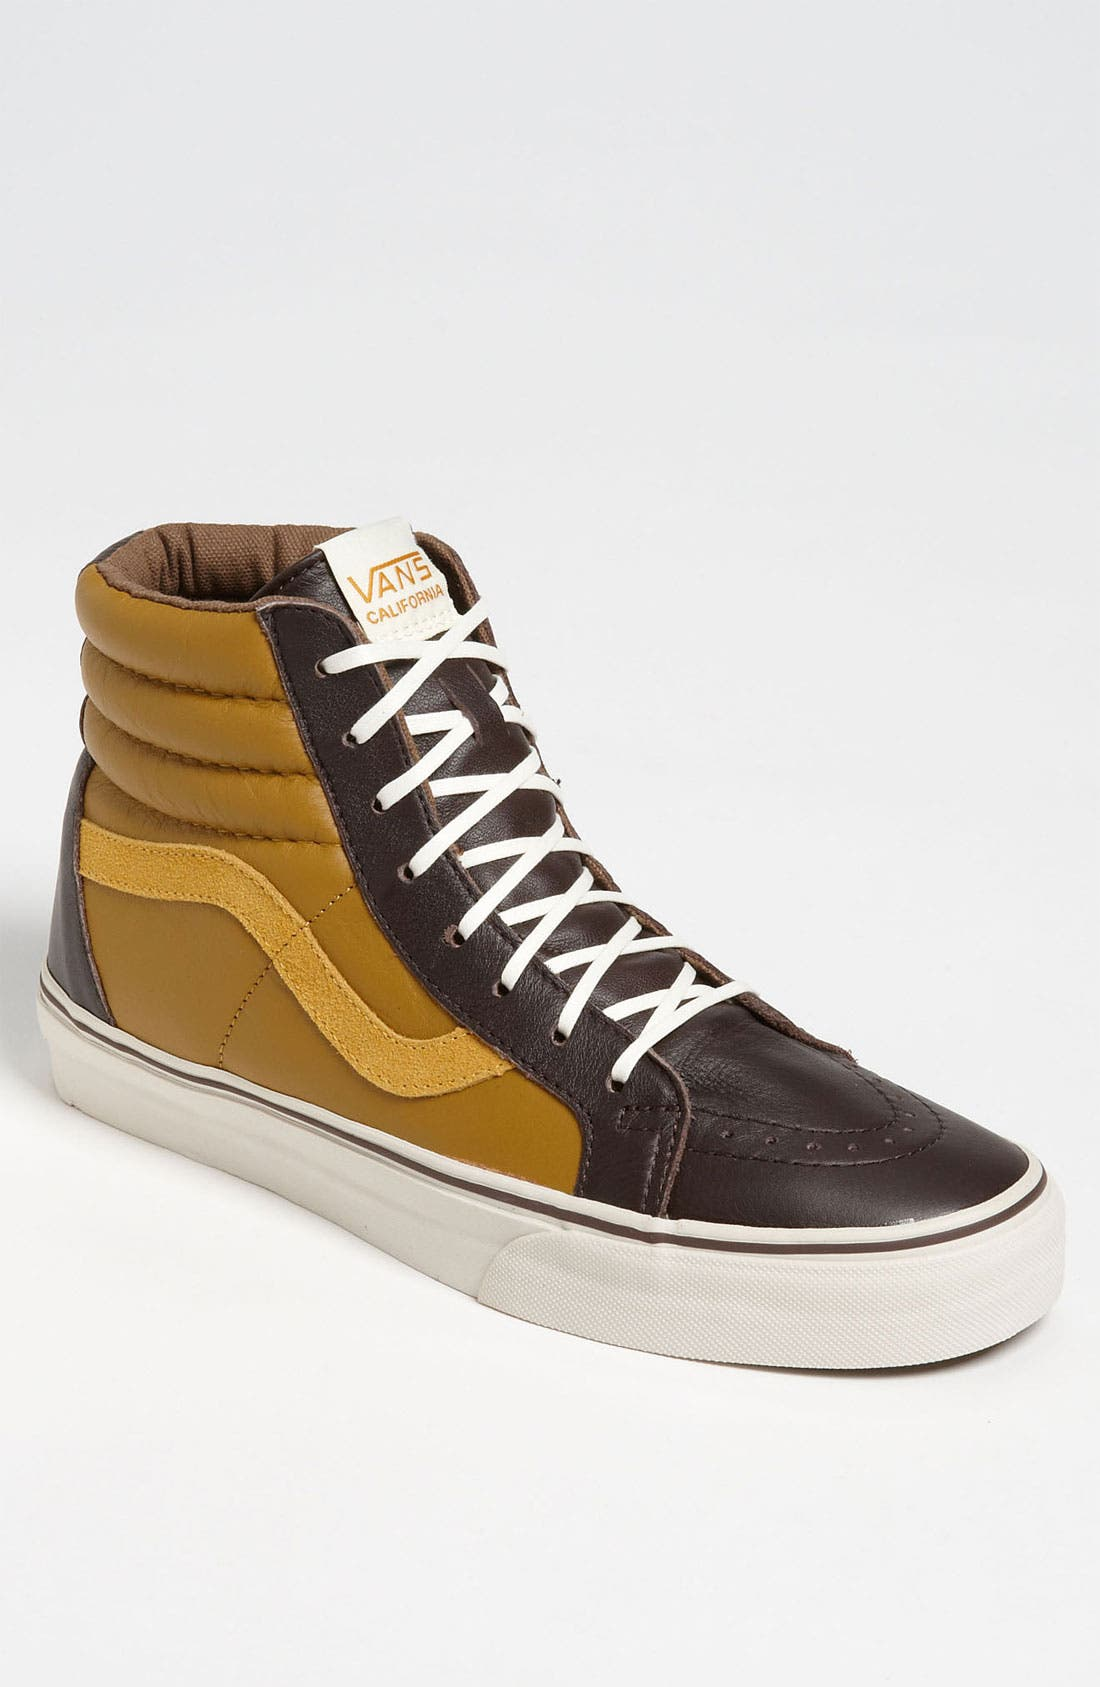 Alternate Image 1 Selected - Vans 'Sk8-Hi Reissue CA' Sneaker (Men)